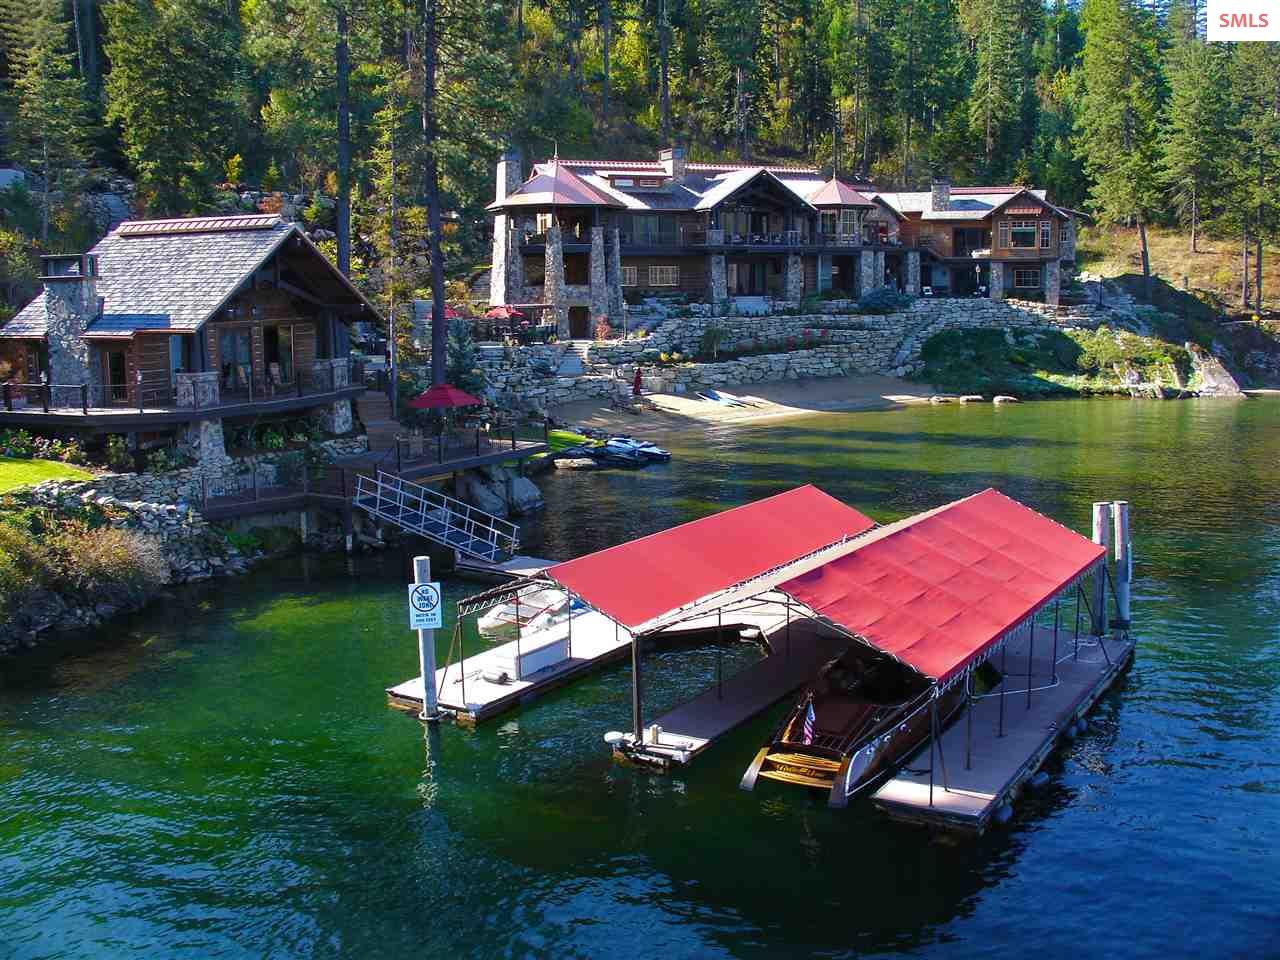 2 bedroom guest house and 2-slip private boat dock